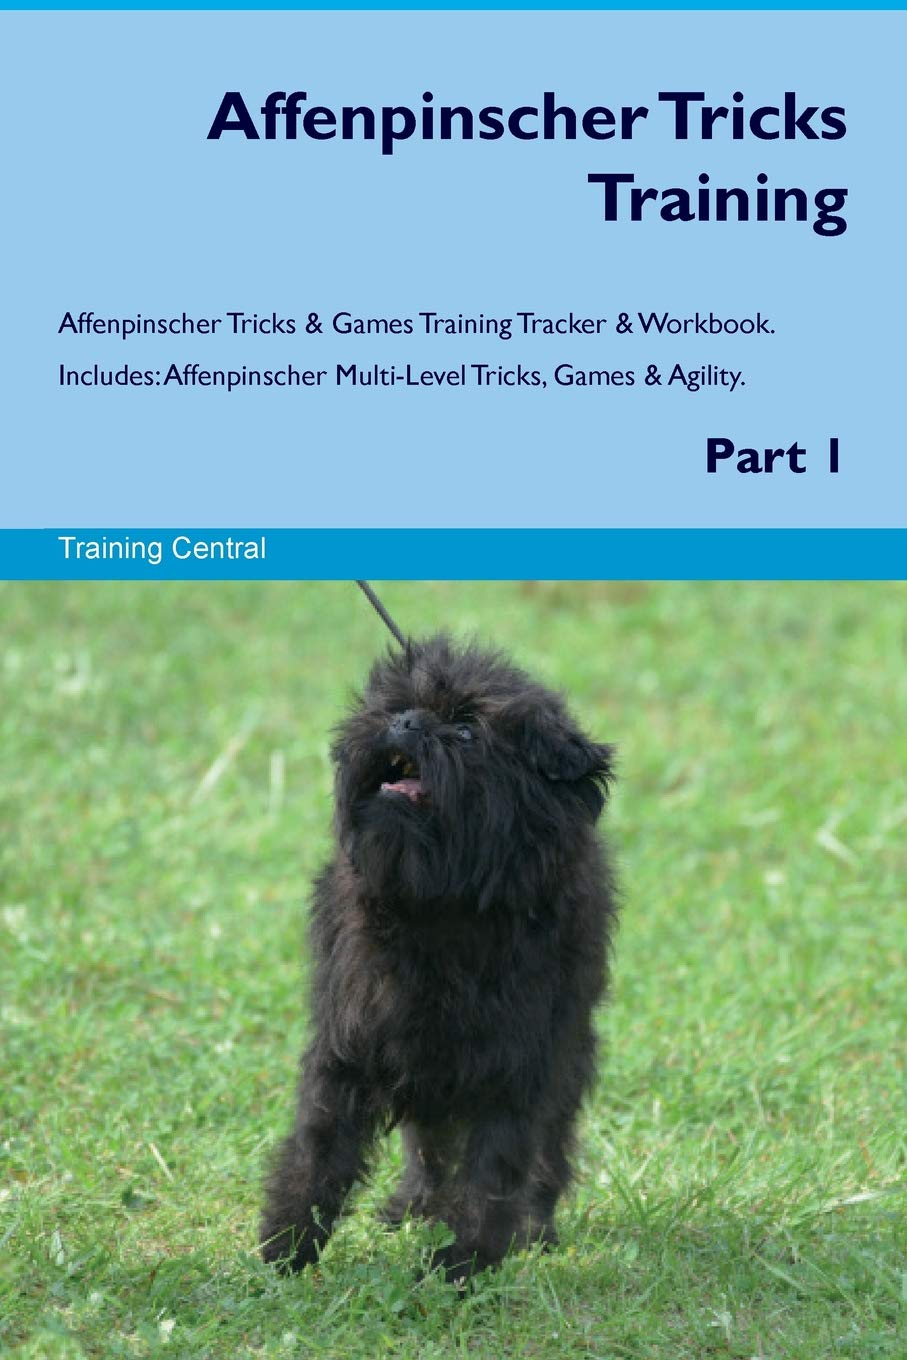 Affenpinscher Tricks Training Affenpinscher Tricks & Games Training Tracker & Workbook. Includes: Affenpinscher Multi-Level Tricks, Games & Agility. Part 1 ebook